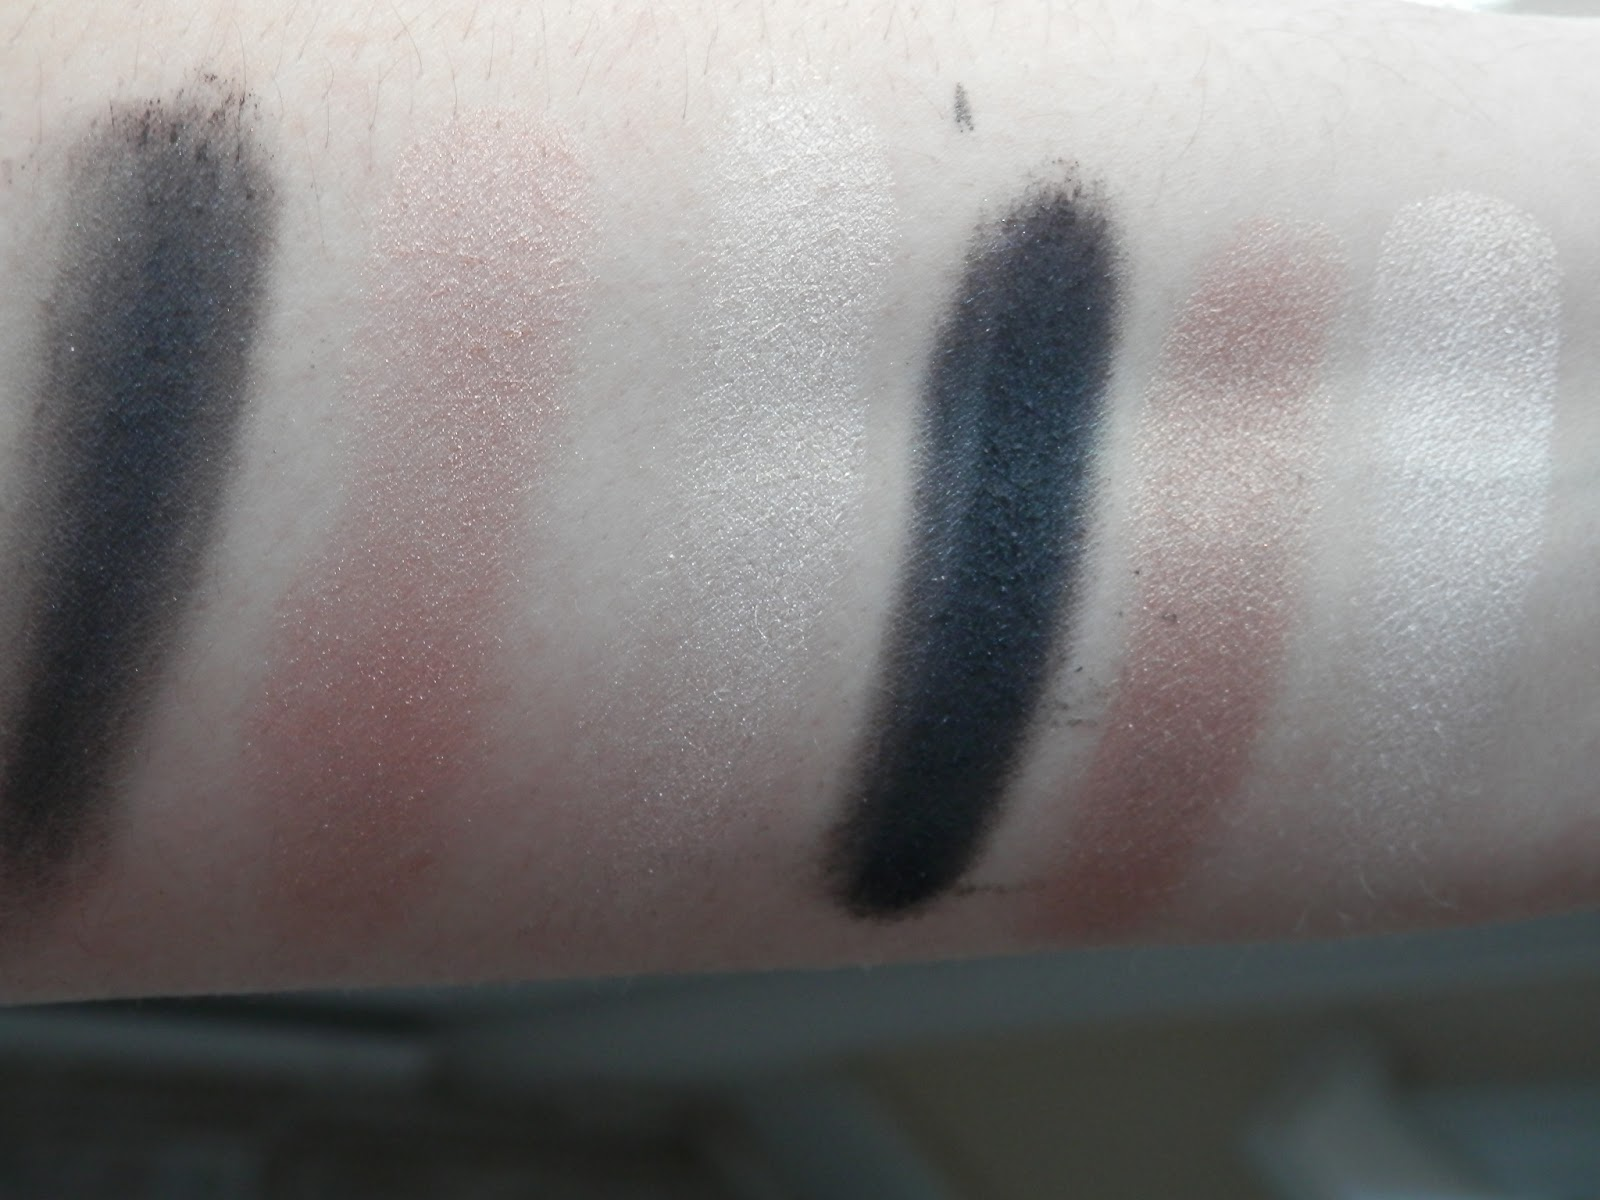 Lorac Starry Eyed Baked Eye Shadow Trio in Movie Star swatch